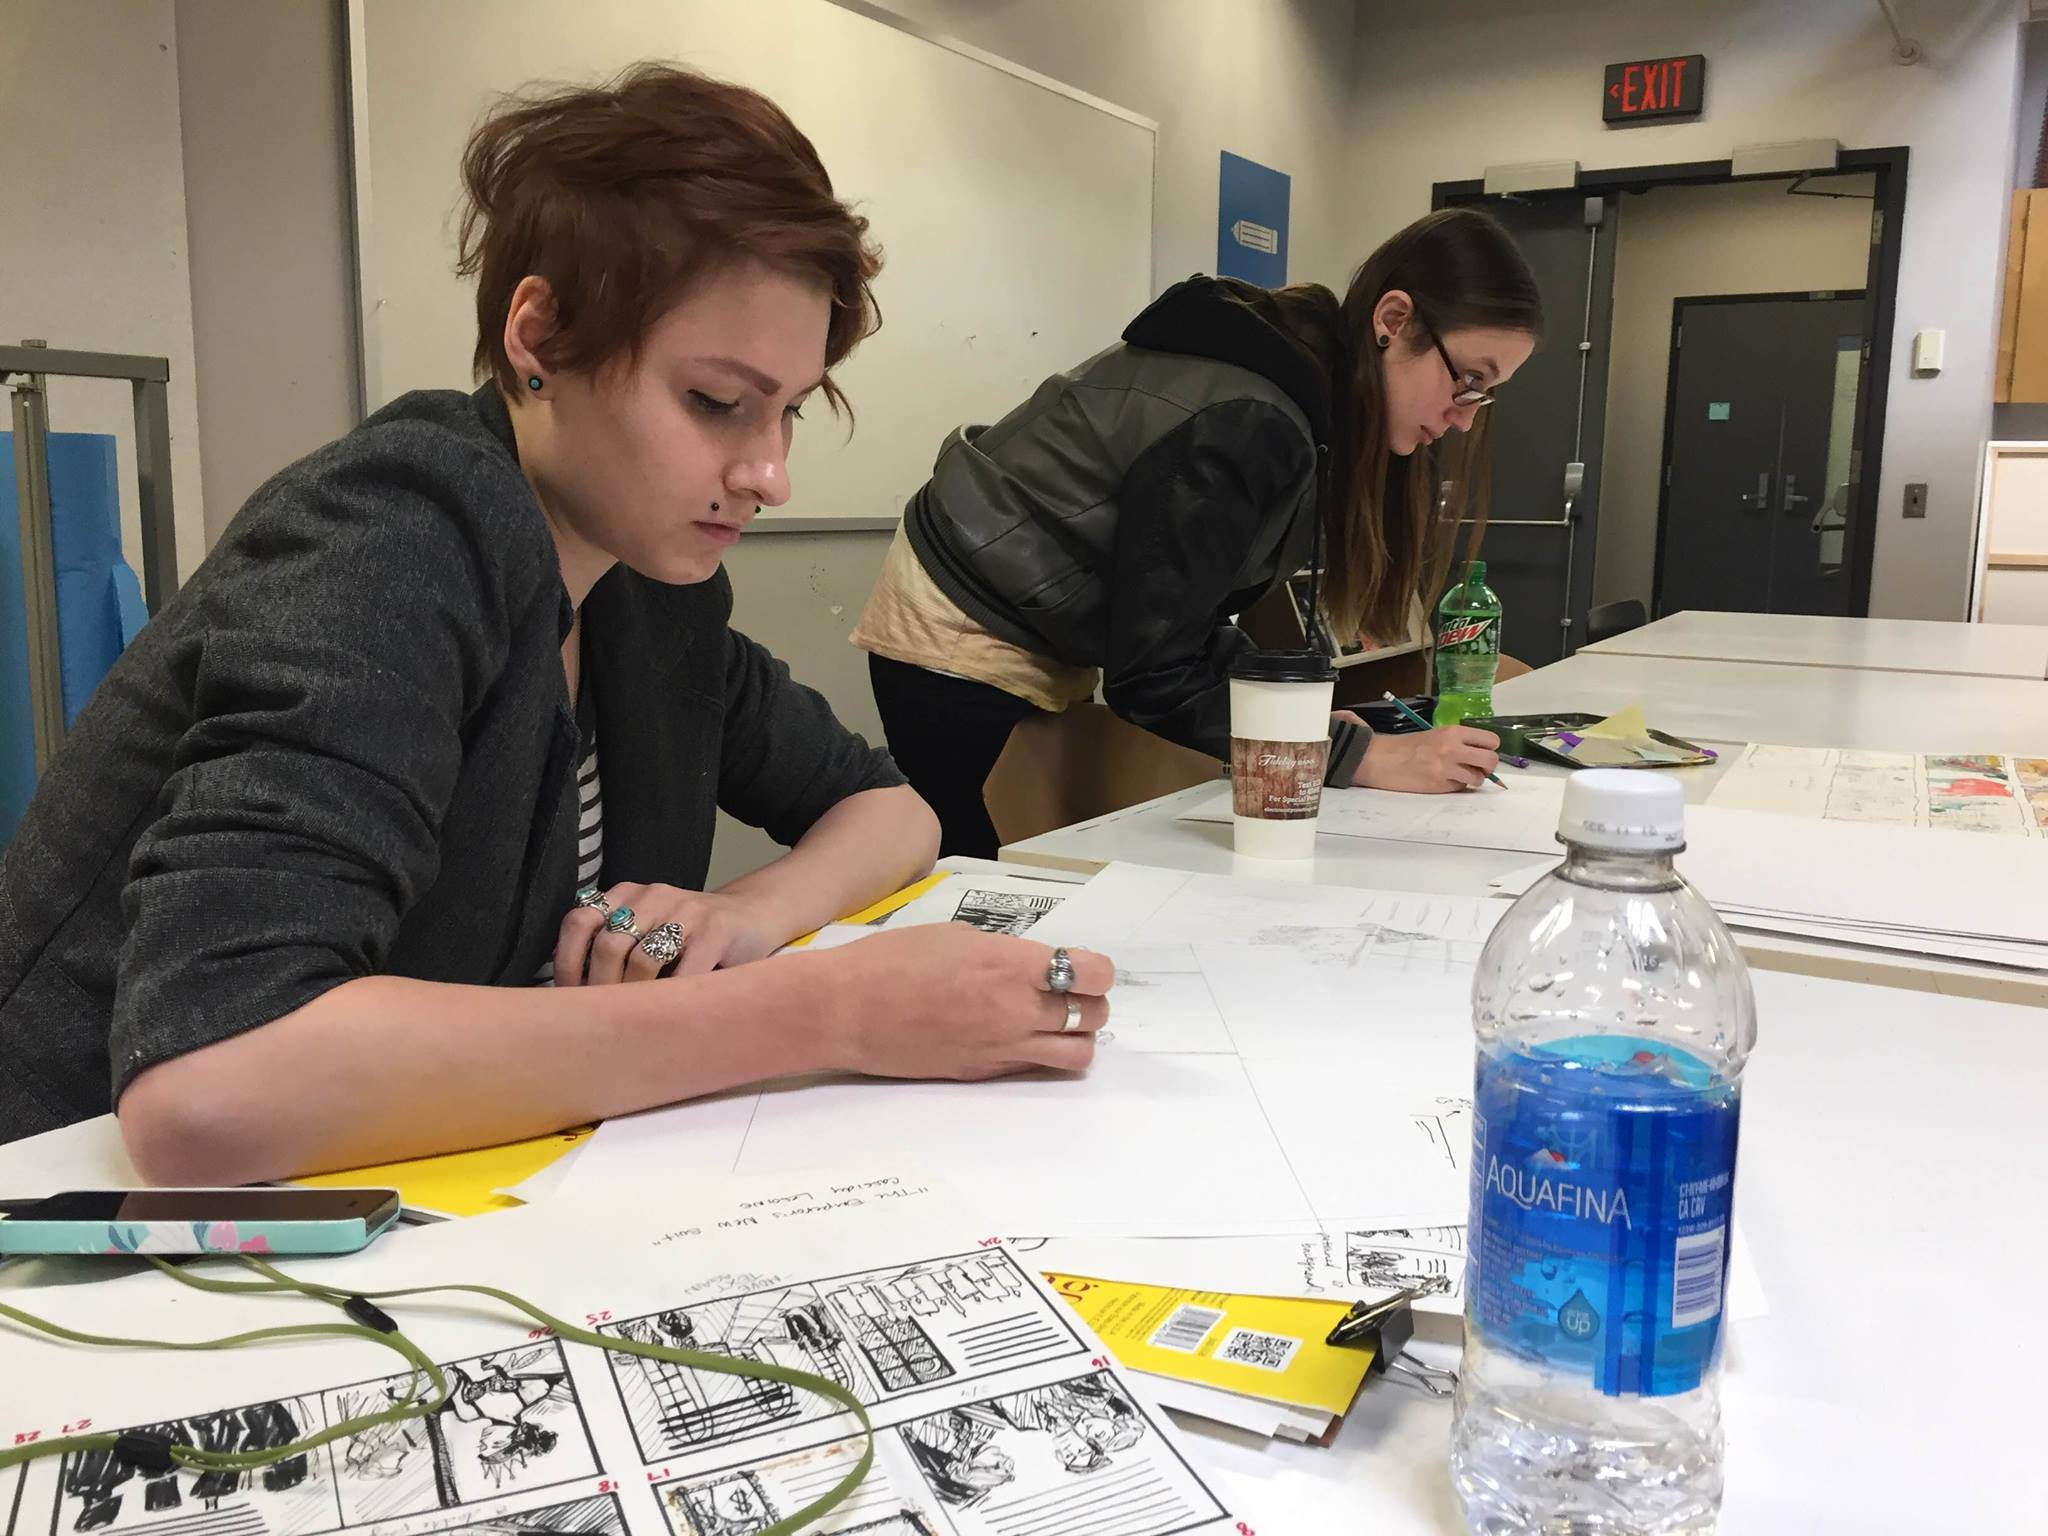 Senior illustration majors Cassidy Lesione and Deanna Szabo work on their projects in the Insalaco Center for Studio Arts.